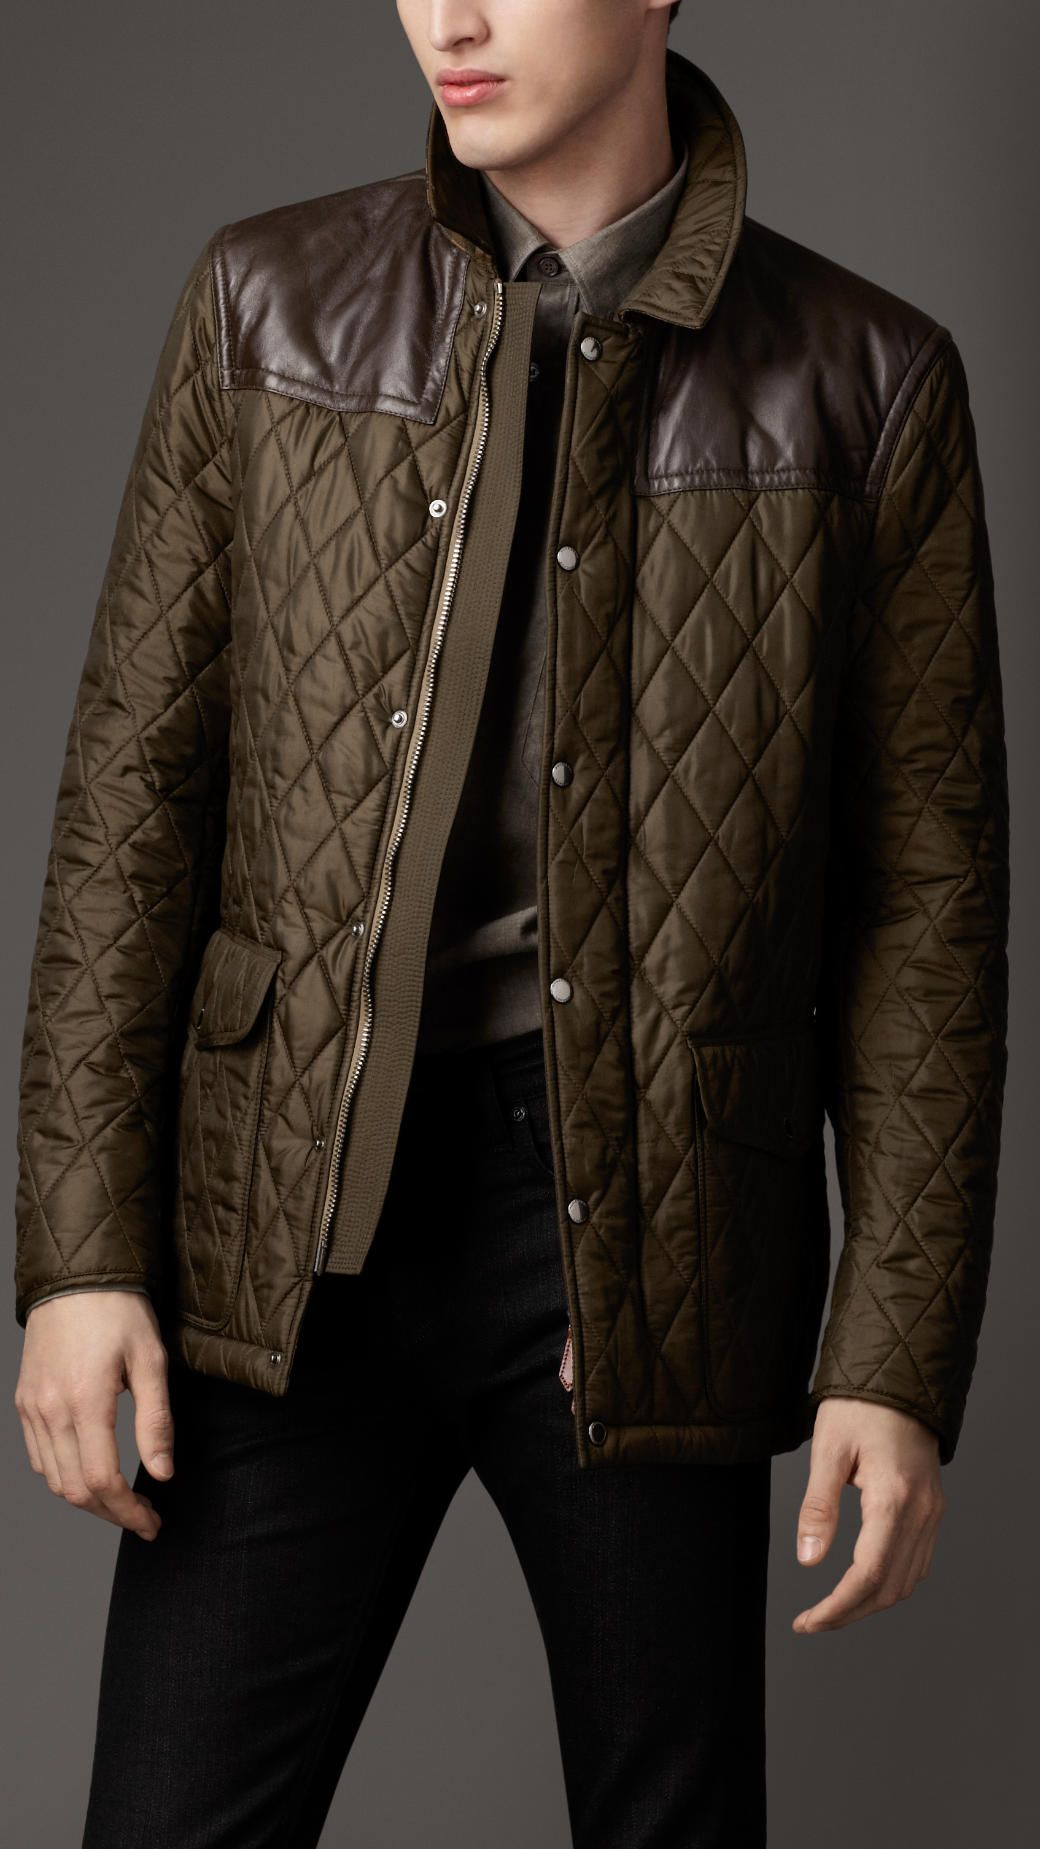 17 Best images about Men's Fashion-Quilted Jacket on Pinterest ...